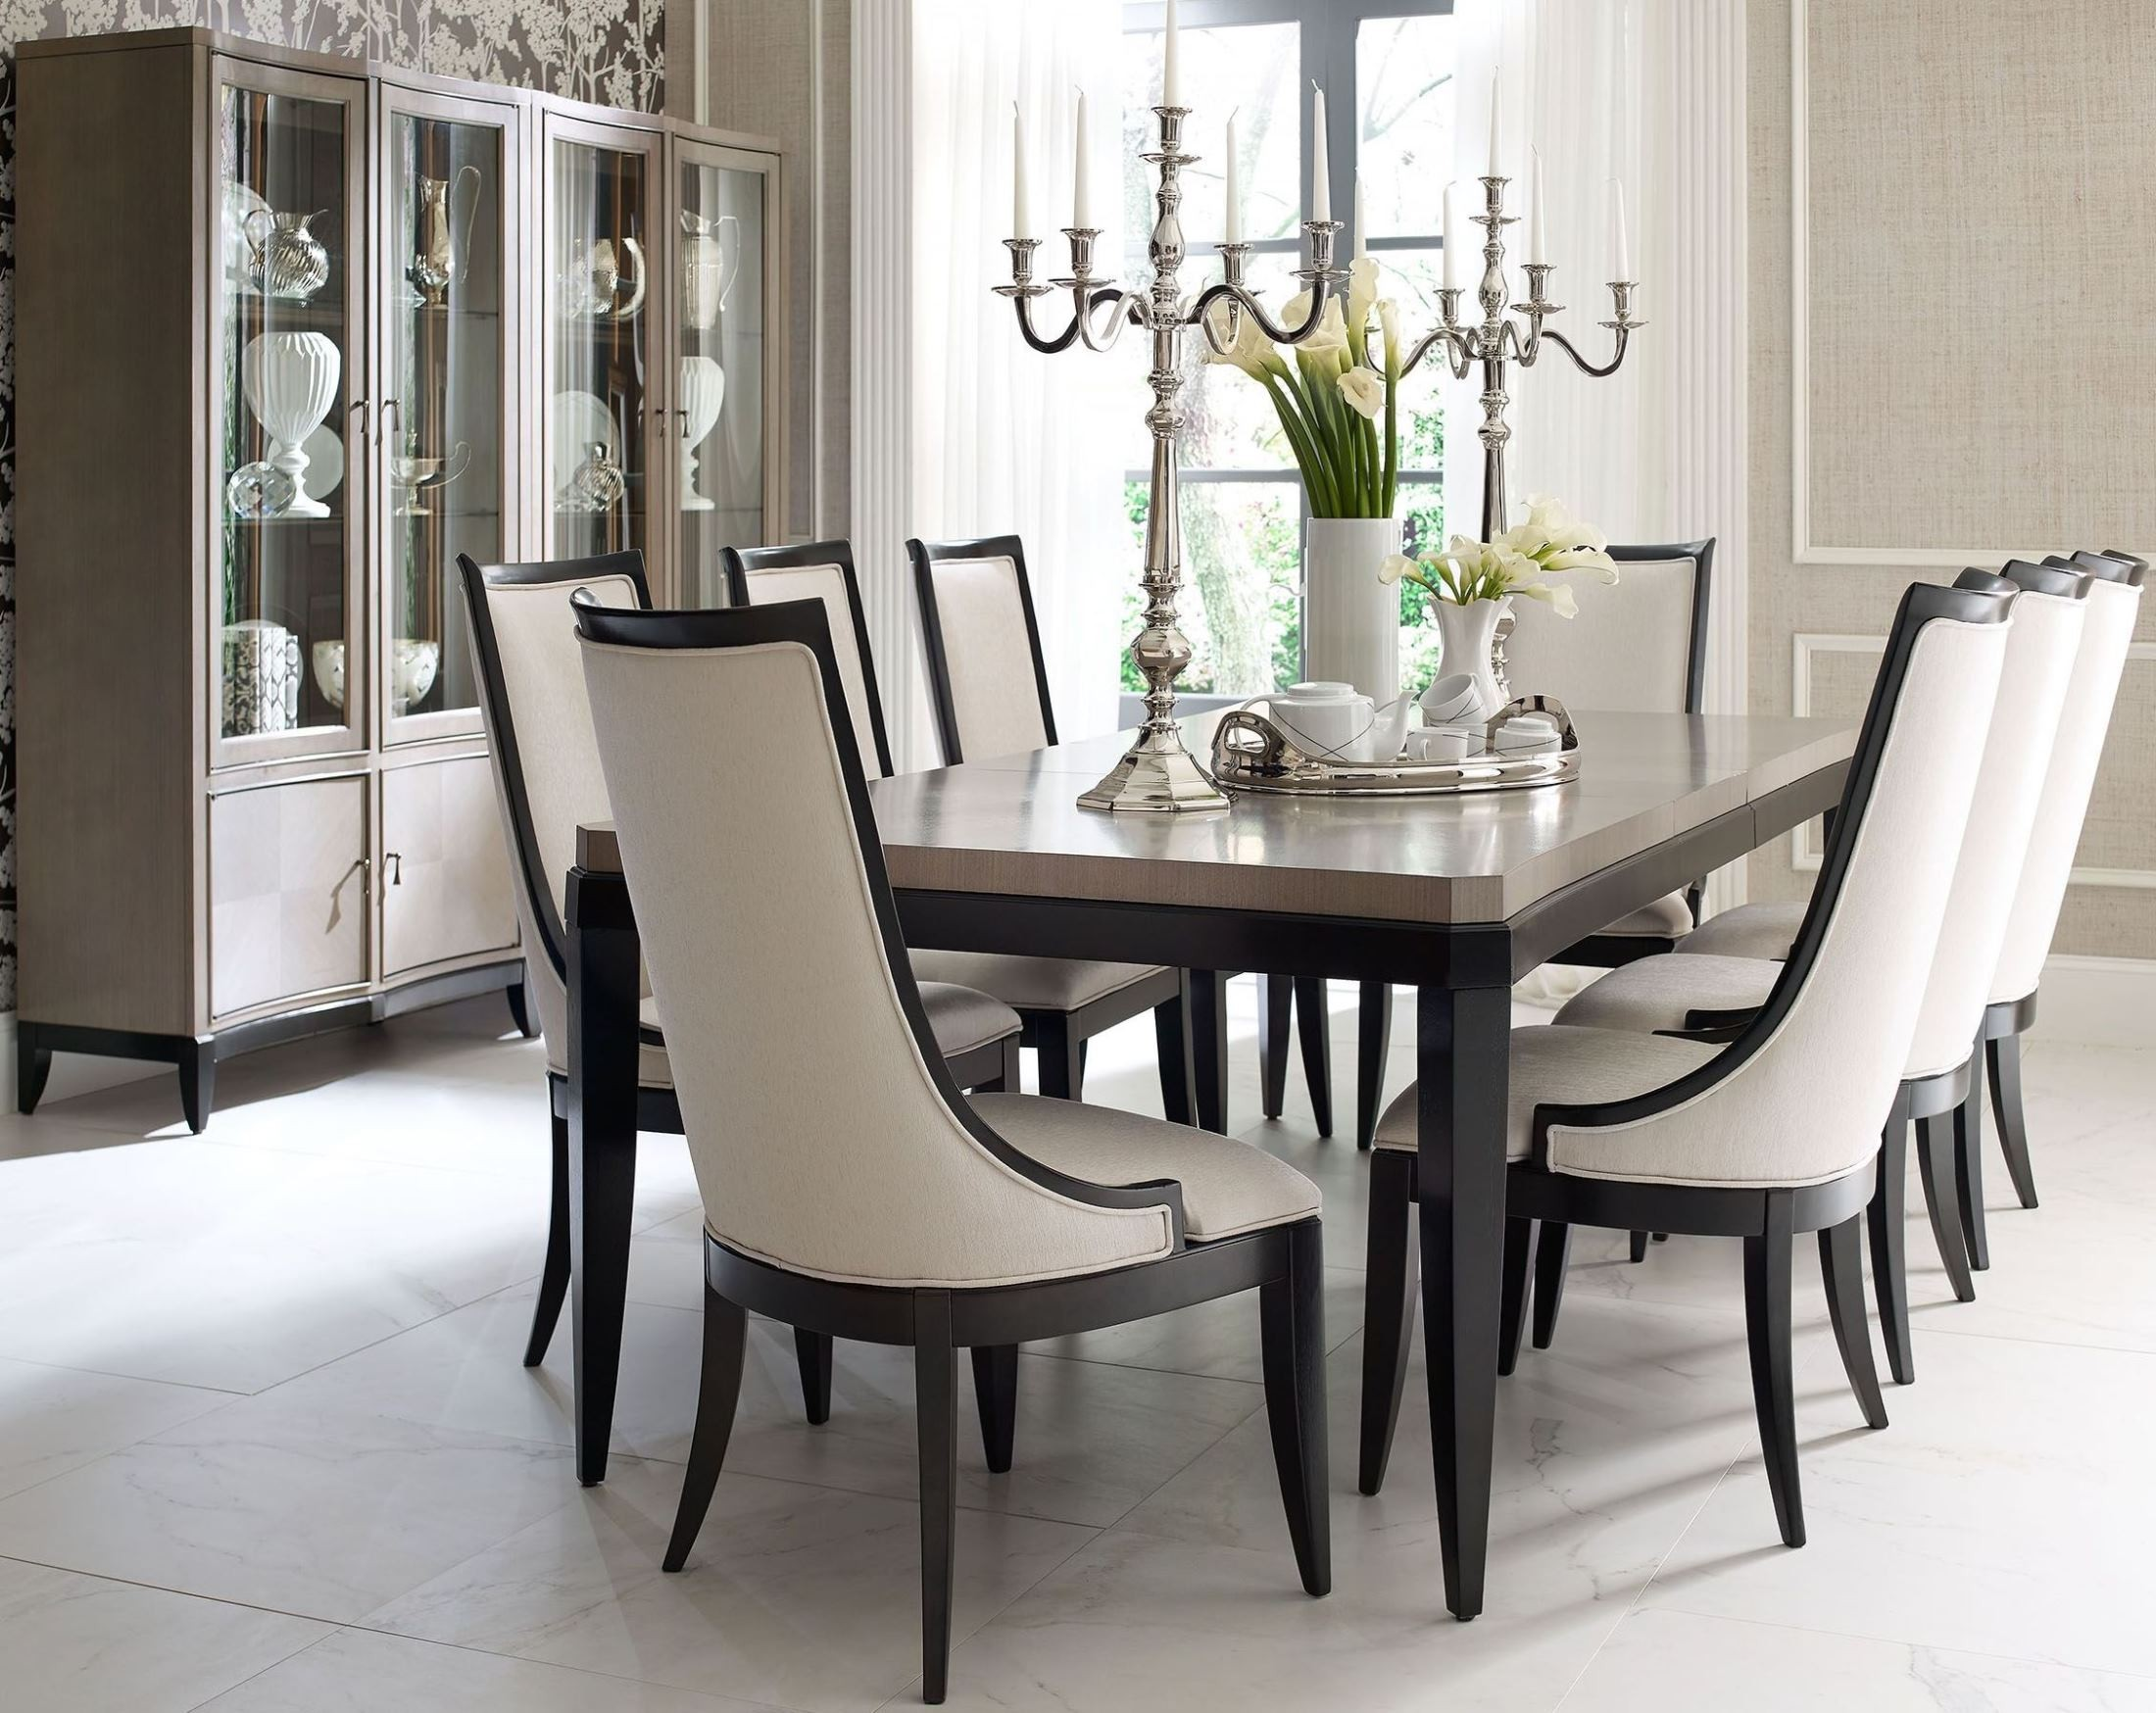 symphony platinum black tie extendable rectangular dining table from legacy classic 5640 221. Black Bedroom Furniture Sets. Home Design Ideas